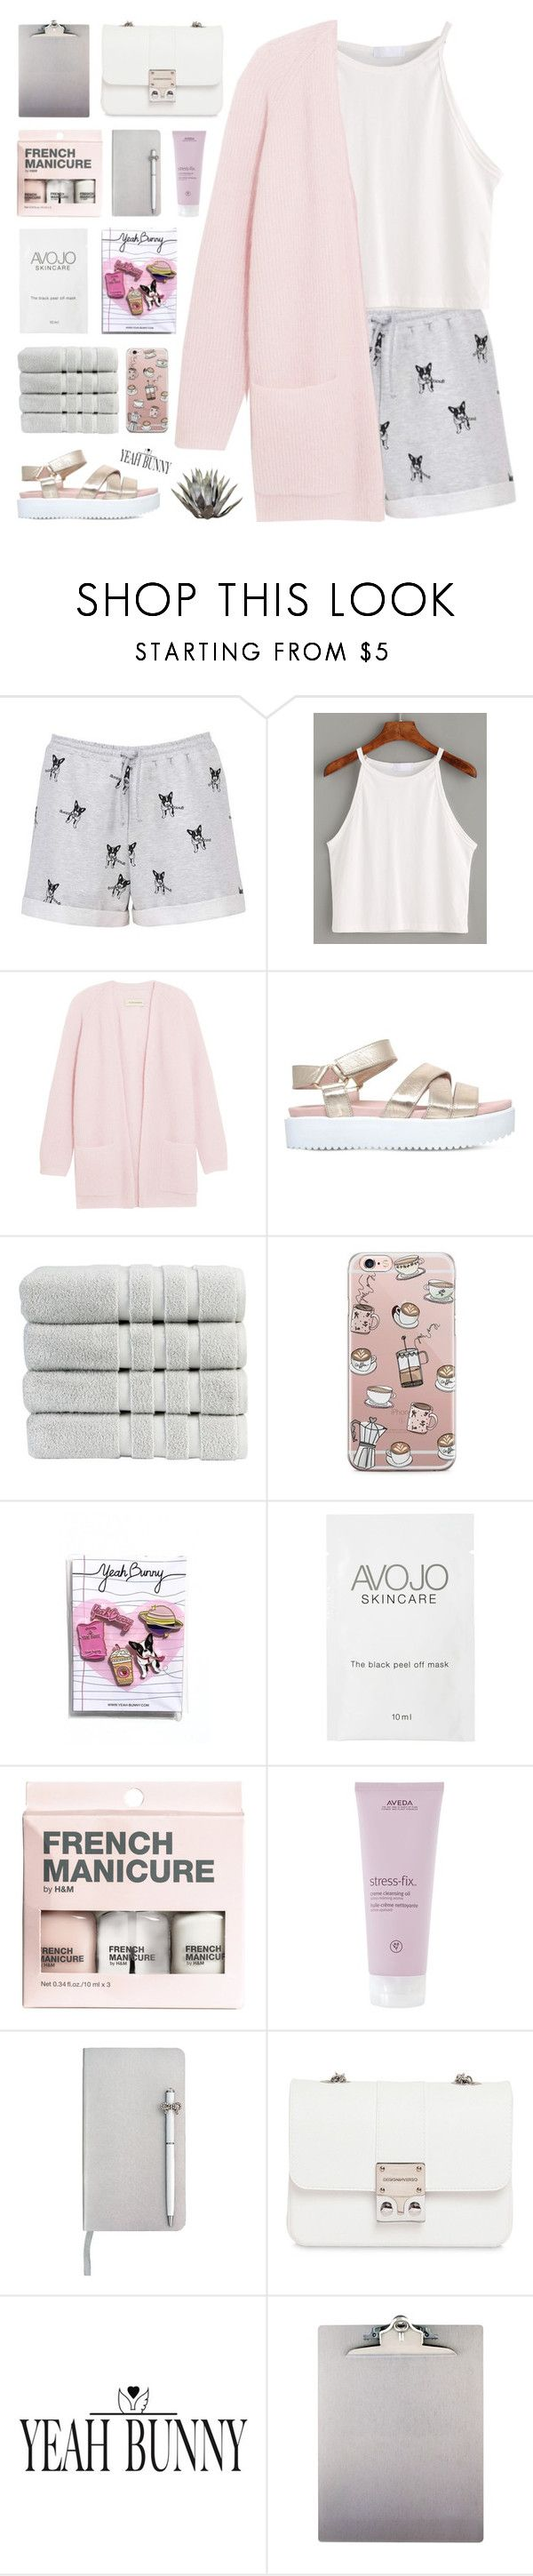 """""""I Woke Up To The Sun Rising & The Lake Glowing - Yeah Bunny"""" by paradiselemonade ❤ liked on Polyvore featuring By Malene Birger, KG Kurt Geiger, Christy, Yeah Bunny, H&M, Aveda, ICE London, Design Inverso, simple and organize"""